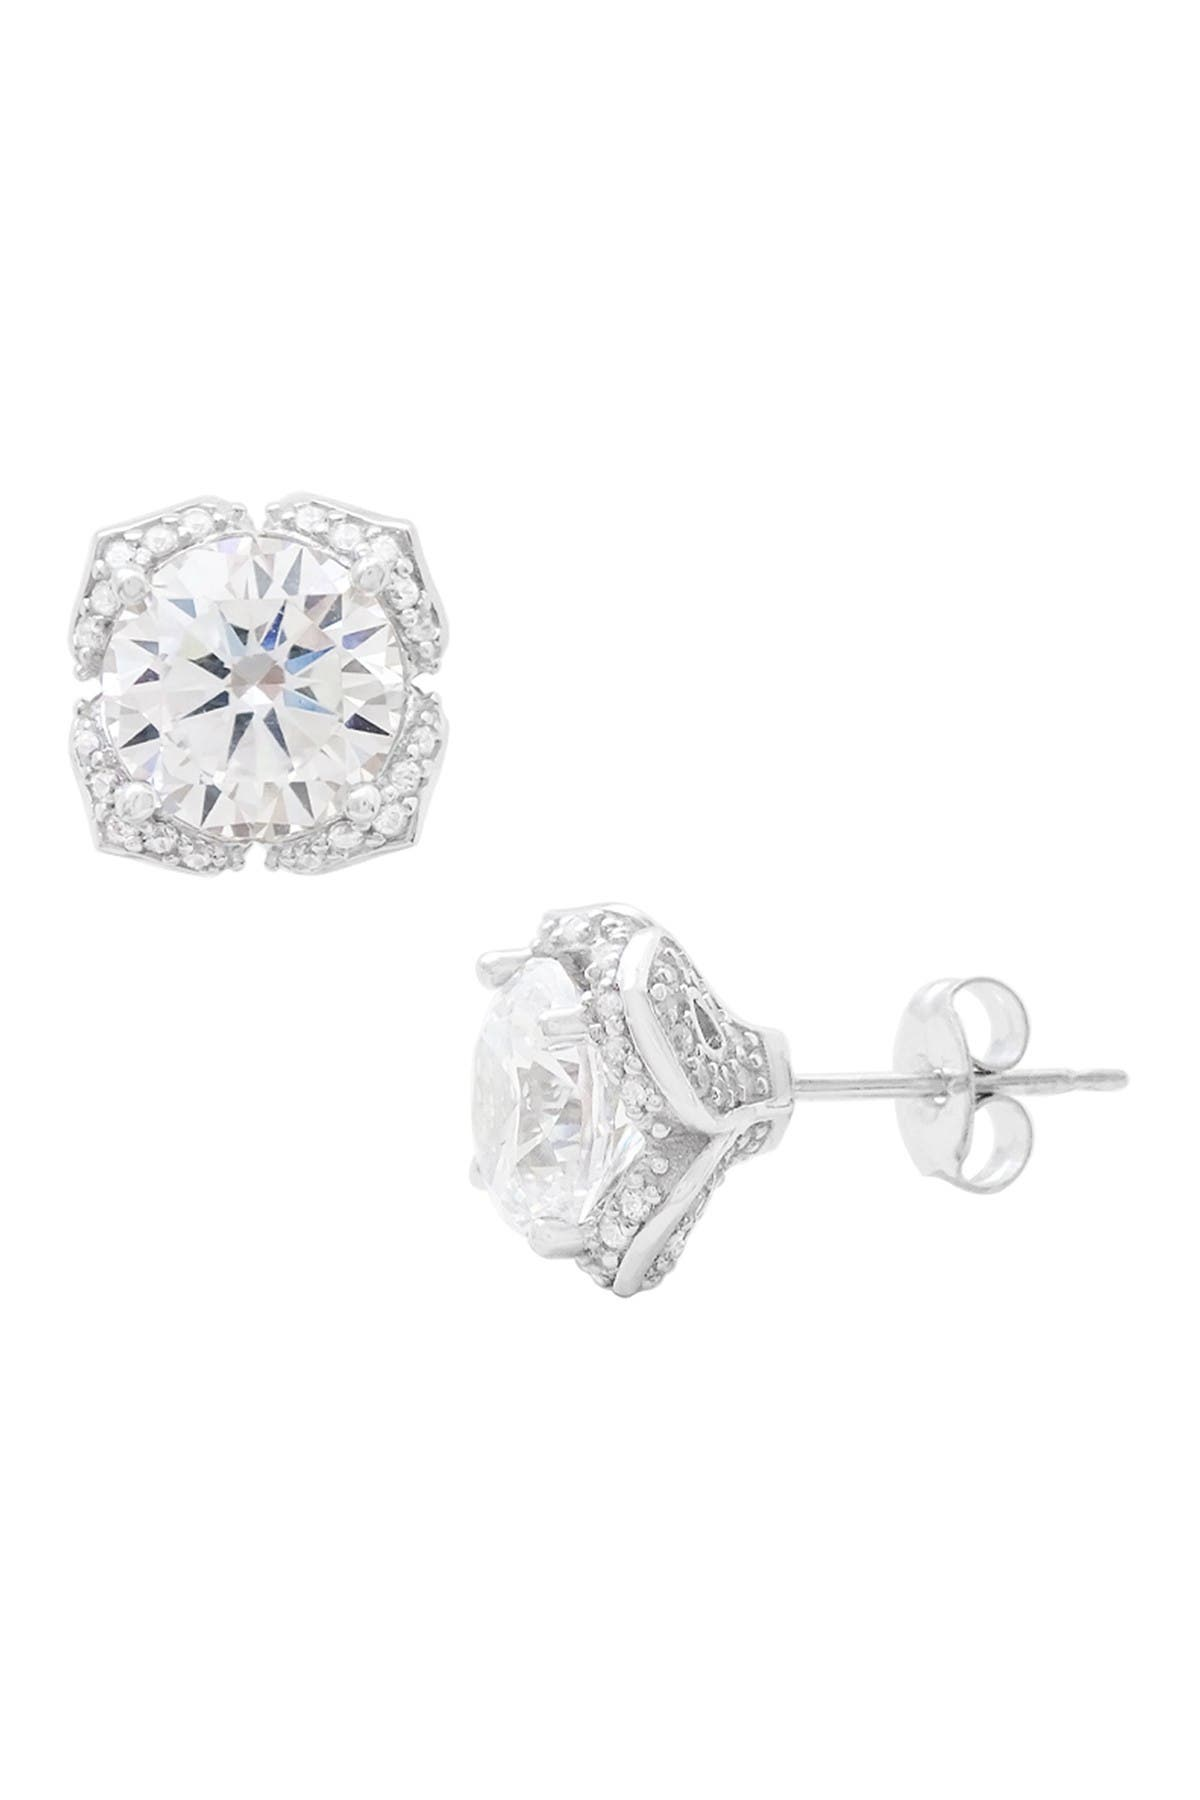 Savvy Cie Platinum Plated Sterling Silver CZ Bold Stud Earrings at Nordstrom Rack